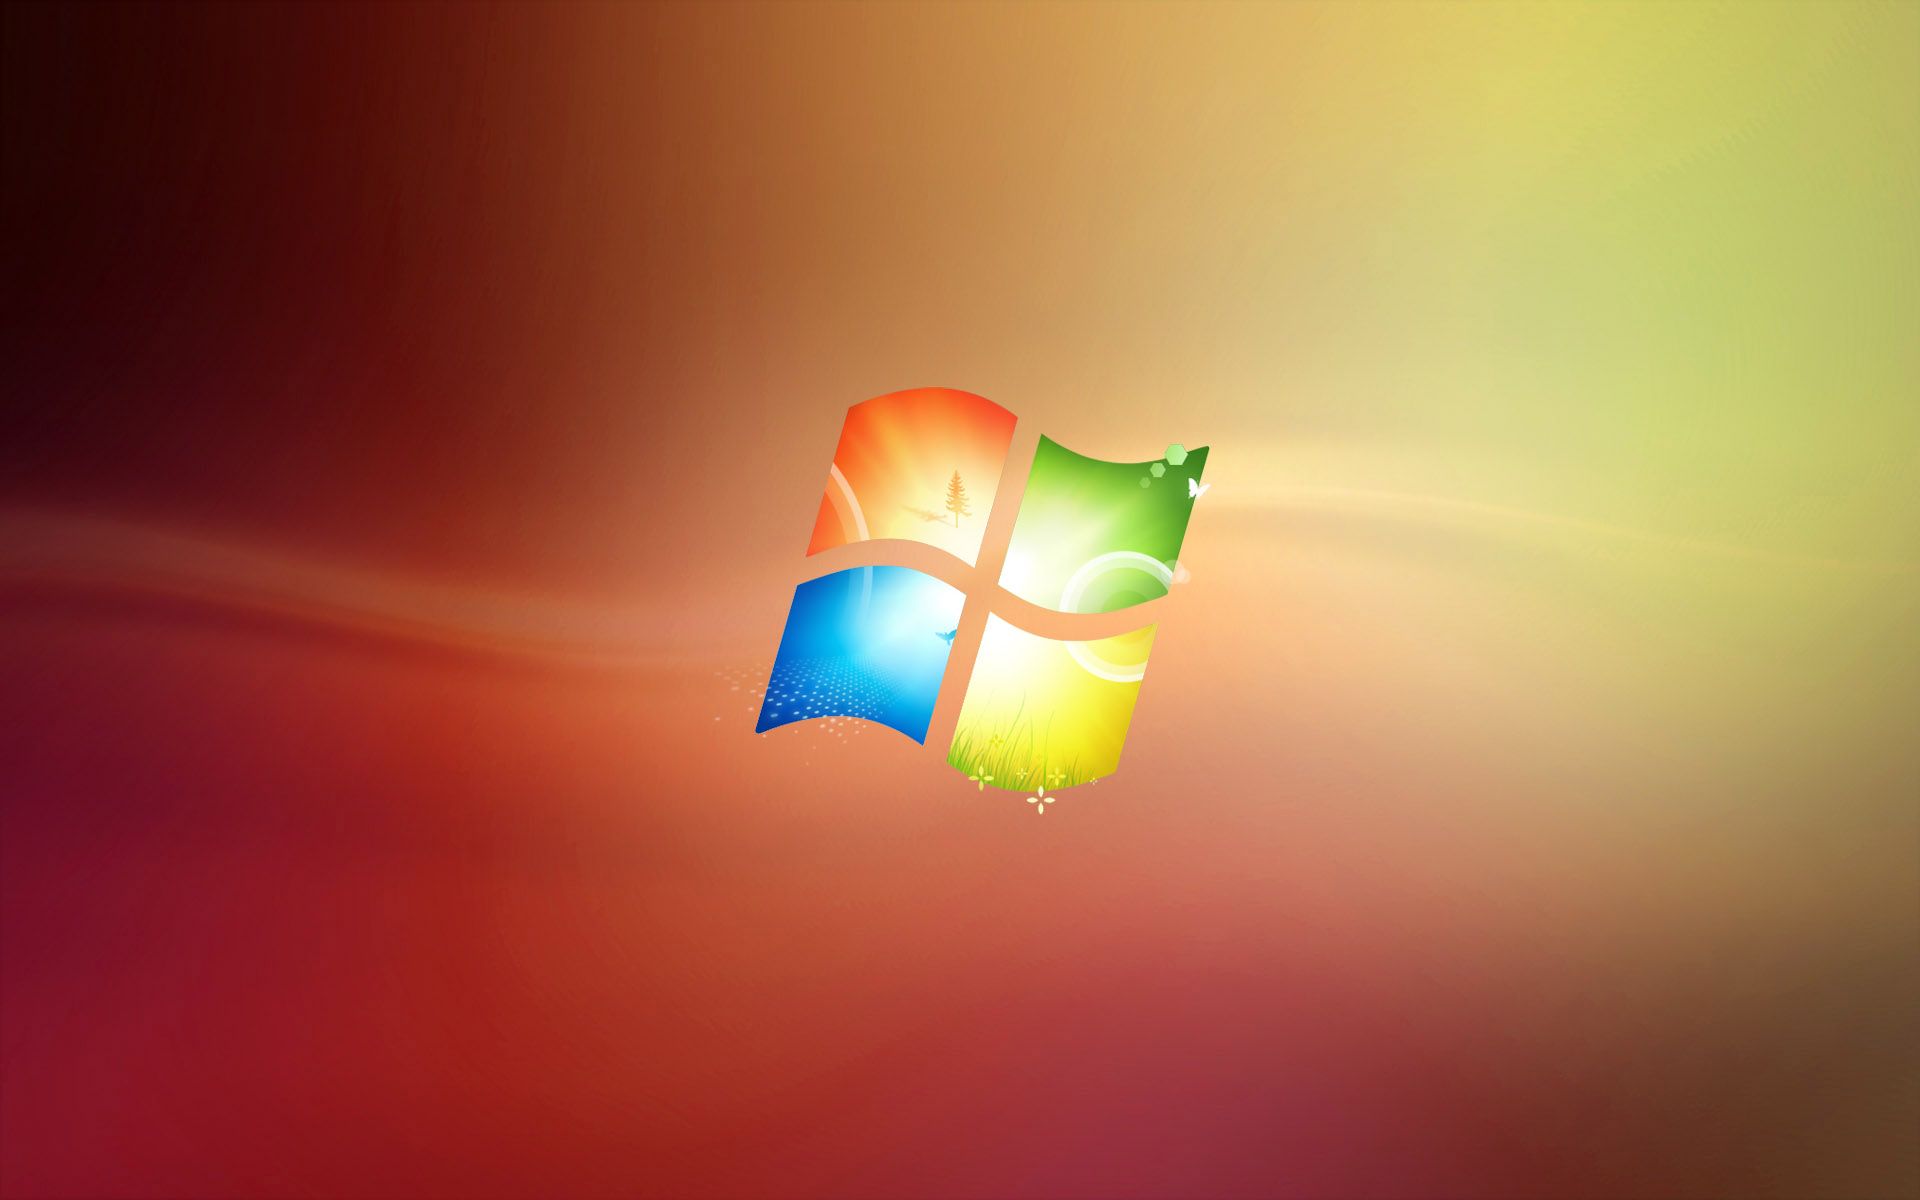 Windows  Images Windows  Summer Theme Hd Wallpaper And Background Photos